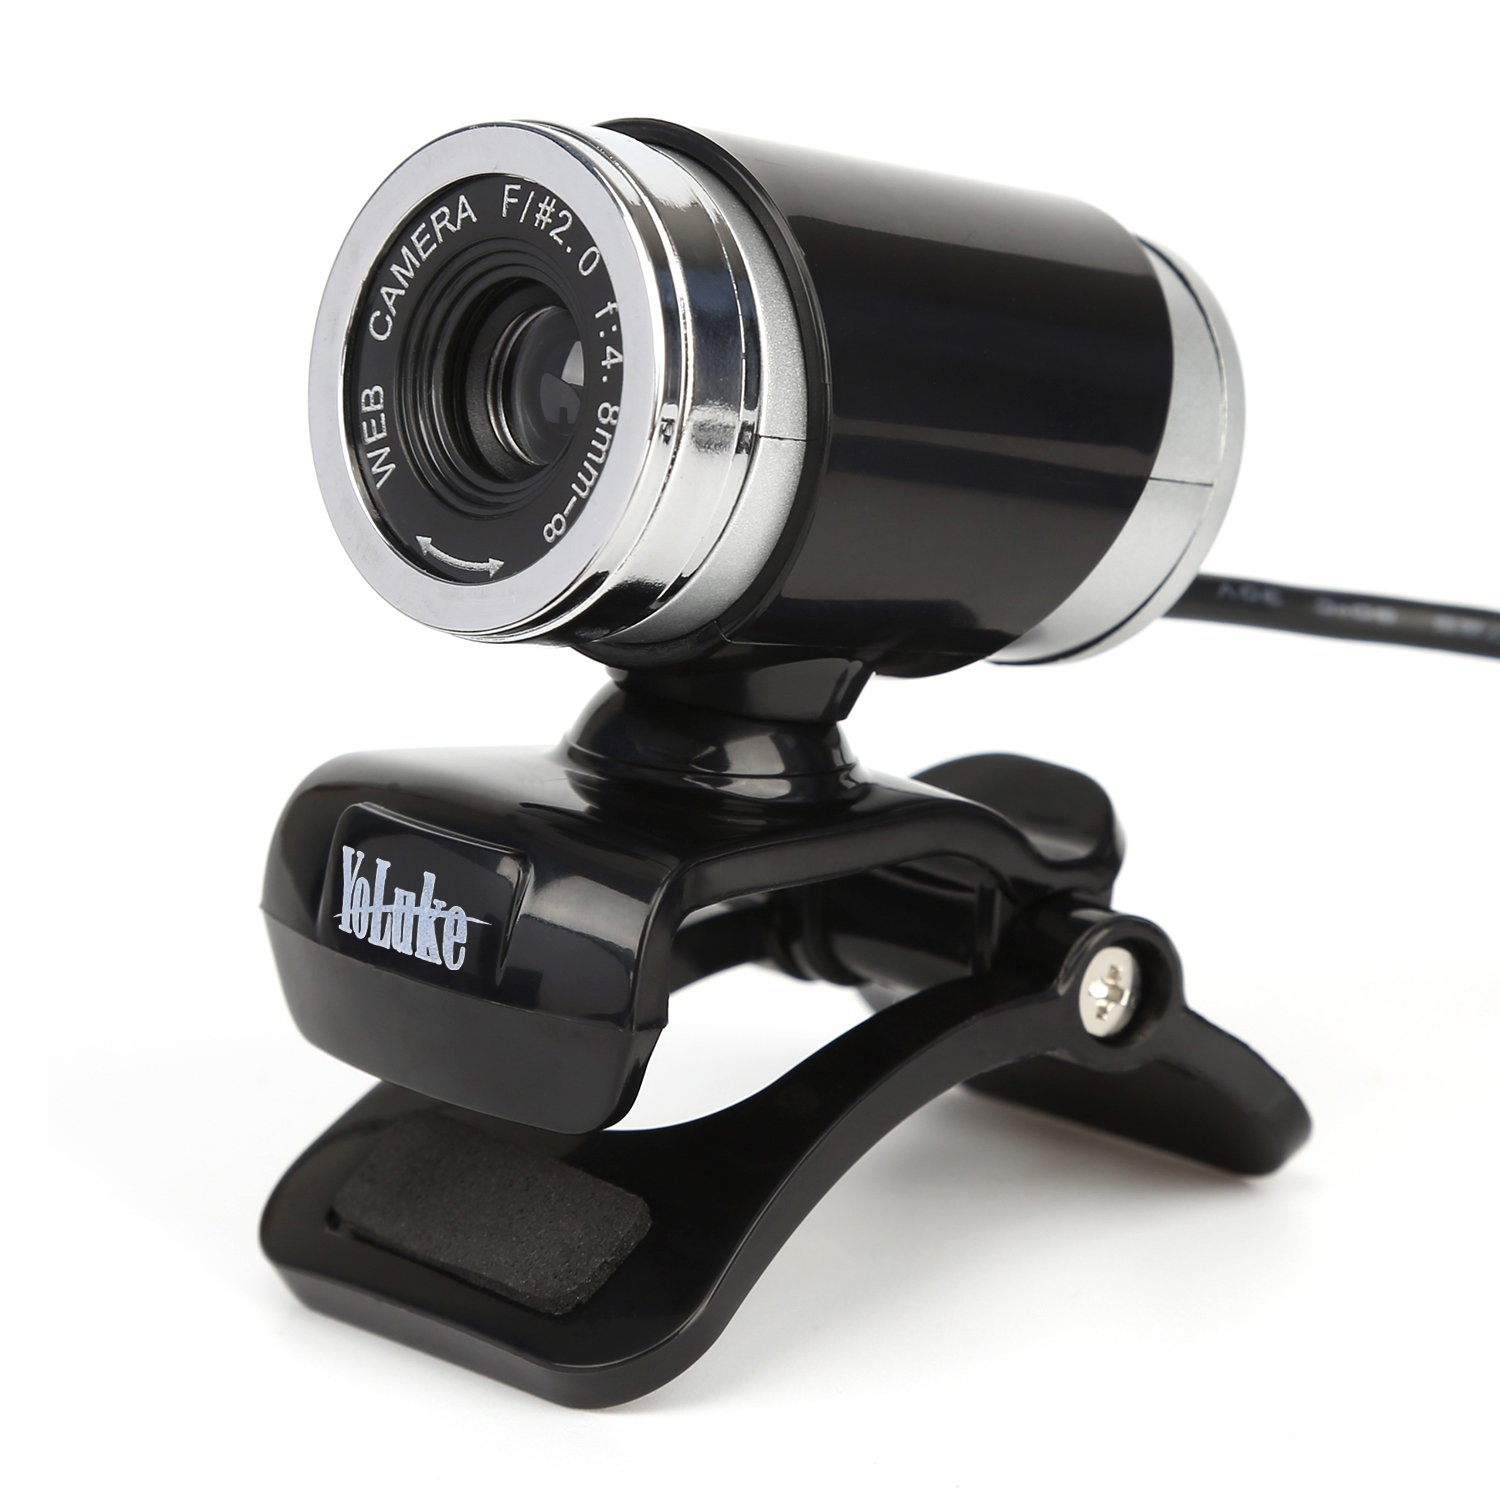 USB Webcam Video HD Web Camera with Built-in Sound Absorption Microphone(Black)